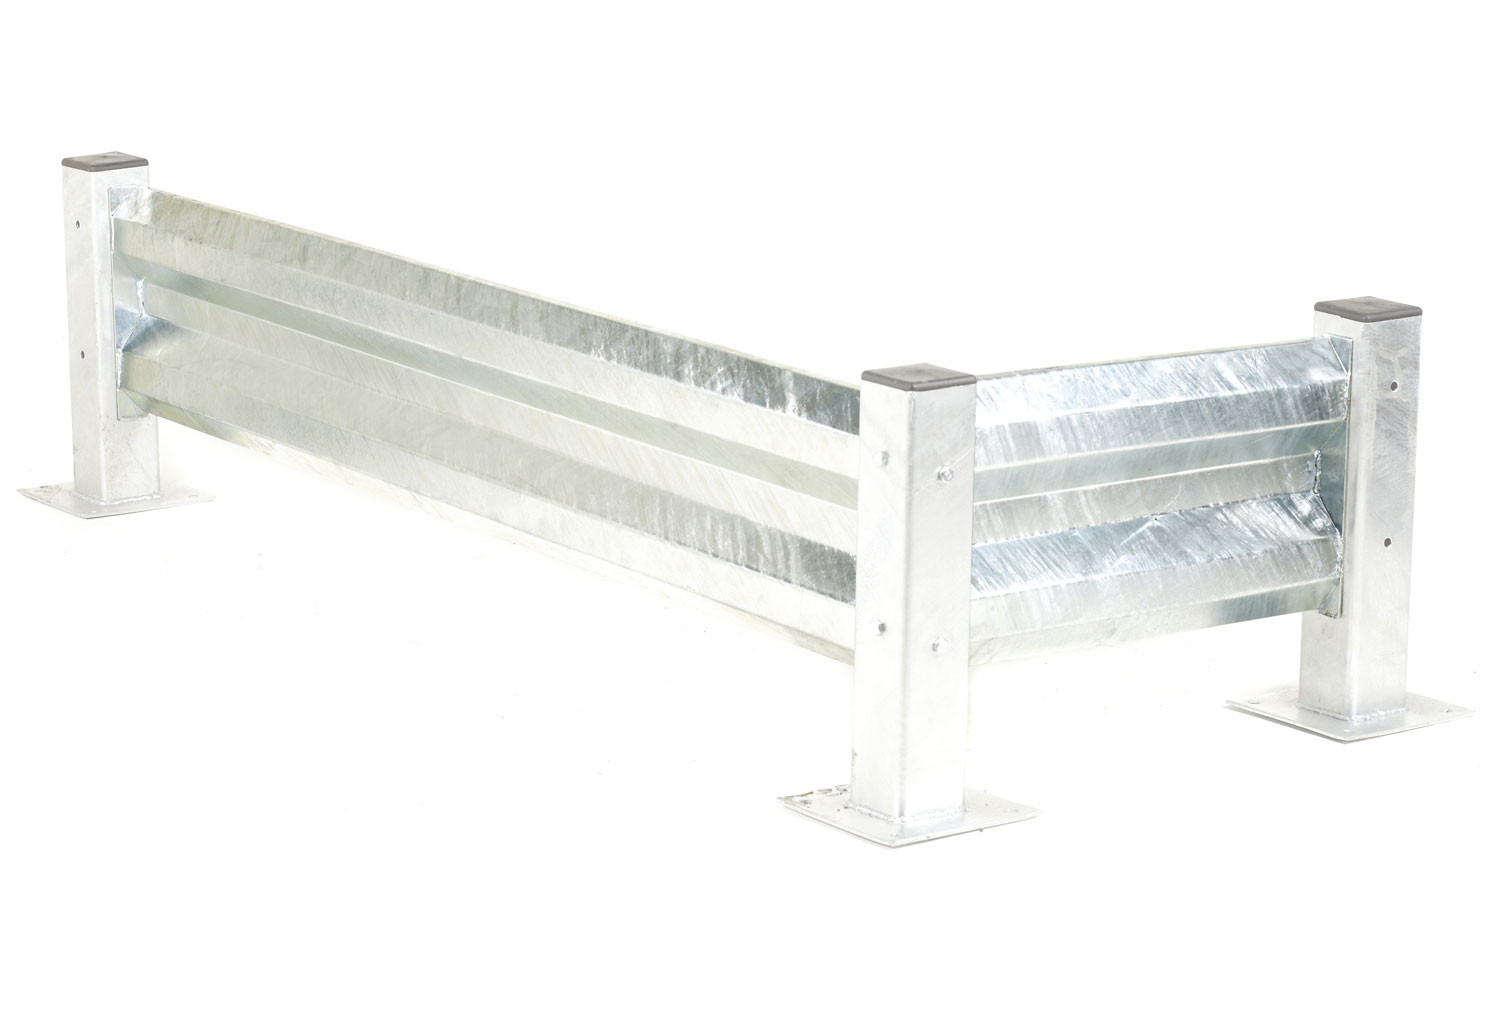 Barrier For Heavy Duty Barrier System (Galvanized)